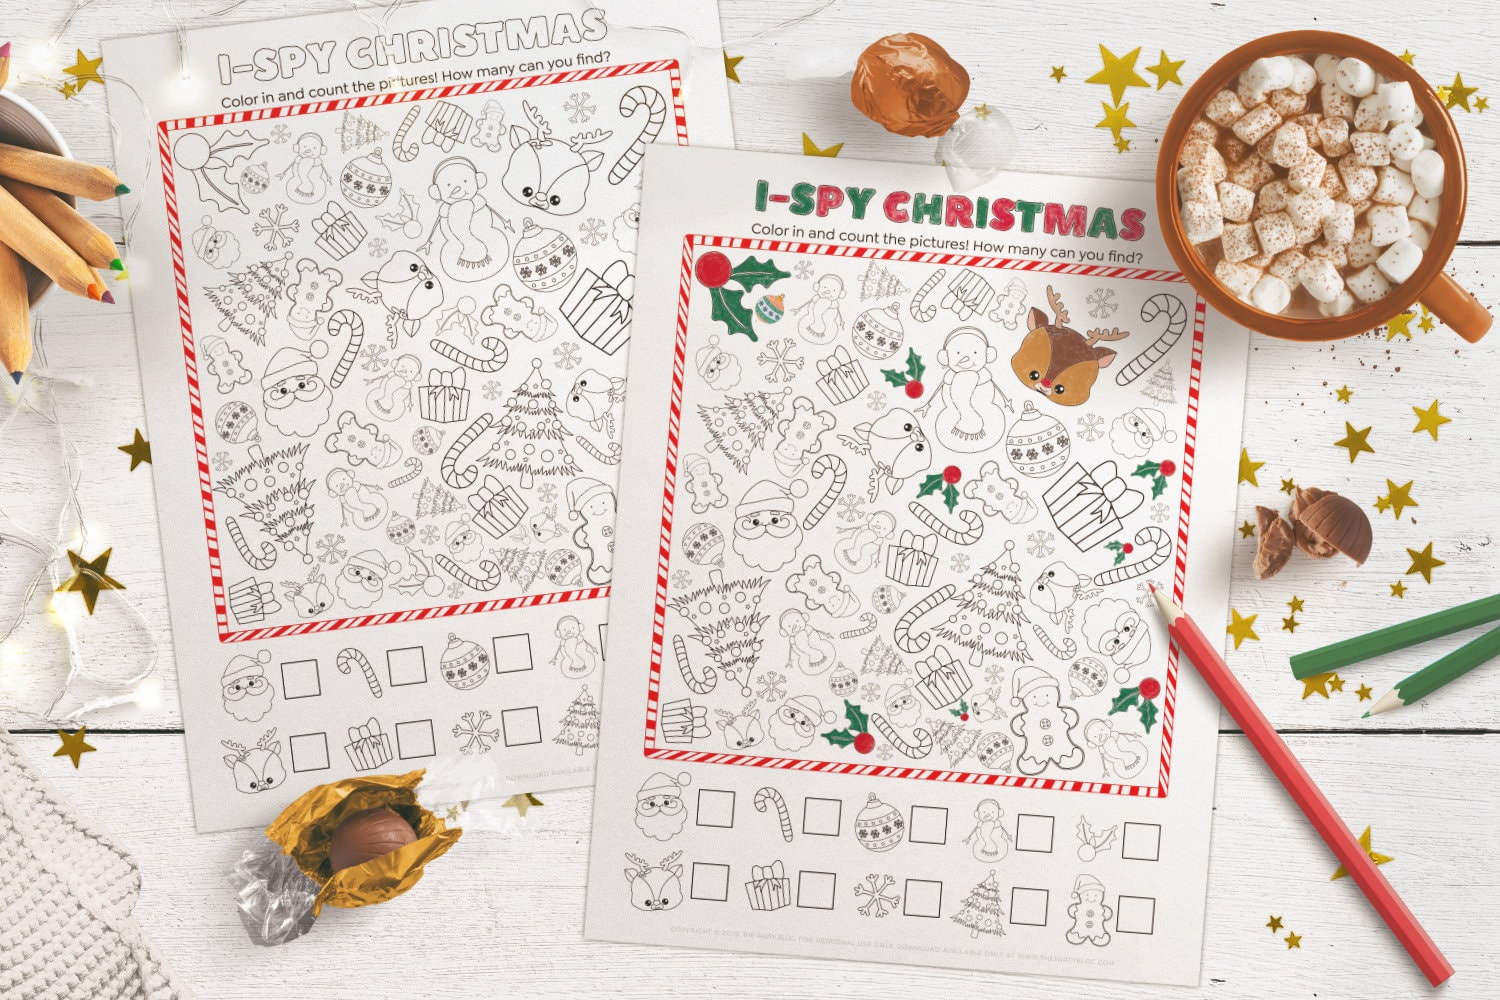 top view of two christmas i-spy activity printable sheets on a white table, the top sheet is partially colored in